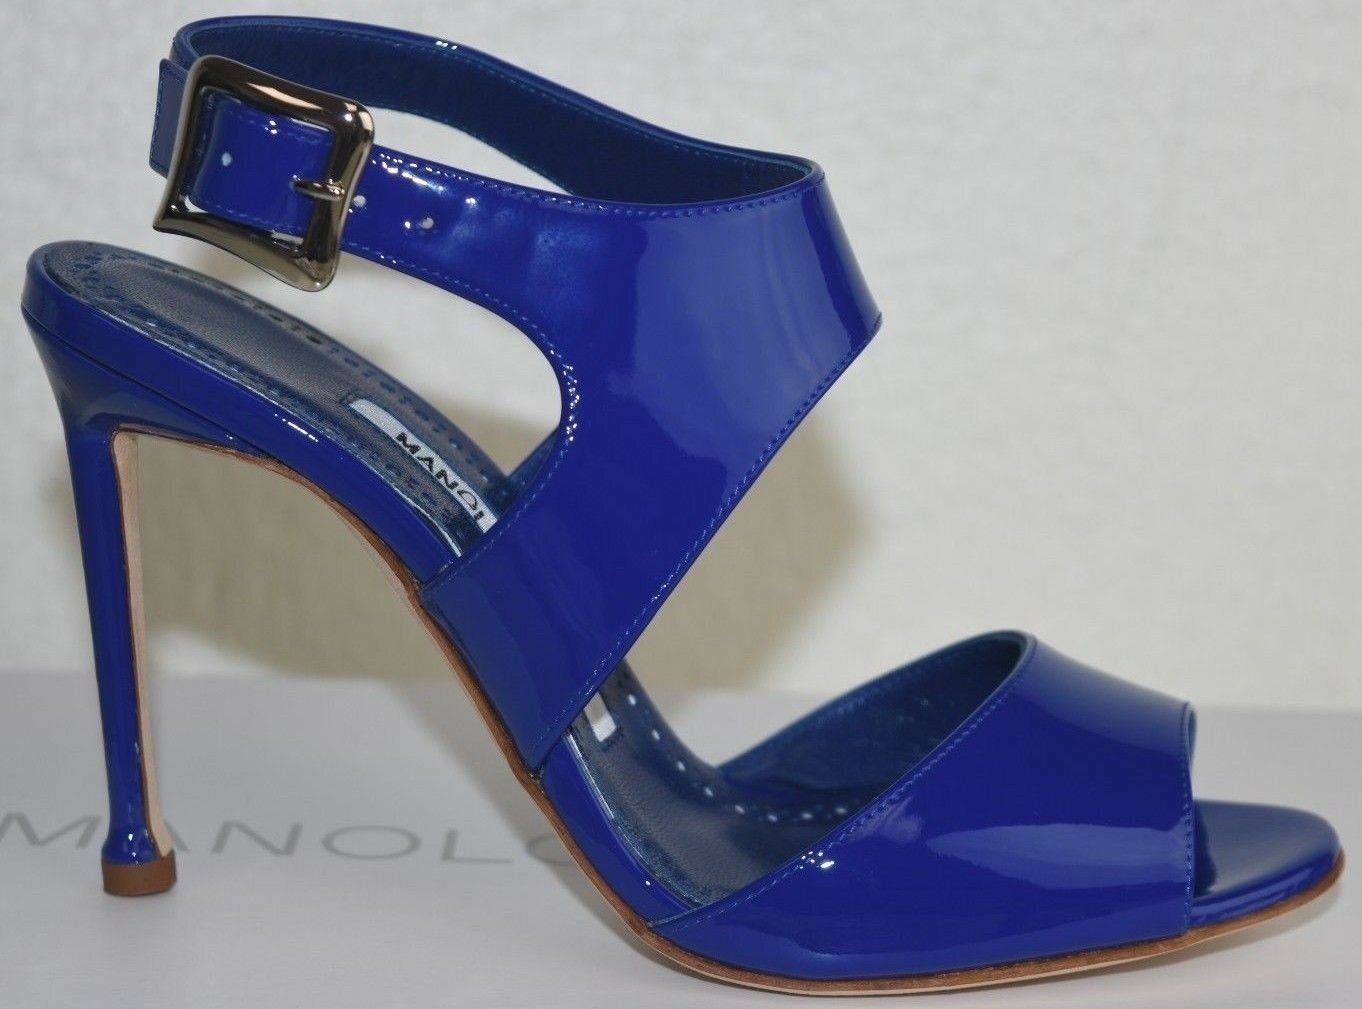 795 NEW Manolo Blahnik BURLA 105 Cobalt bluee Patent Leather Sandals shoes 36